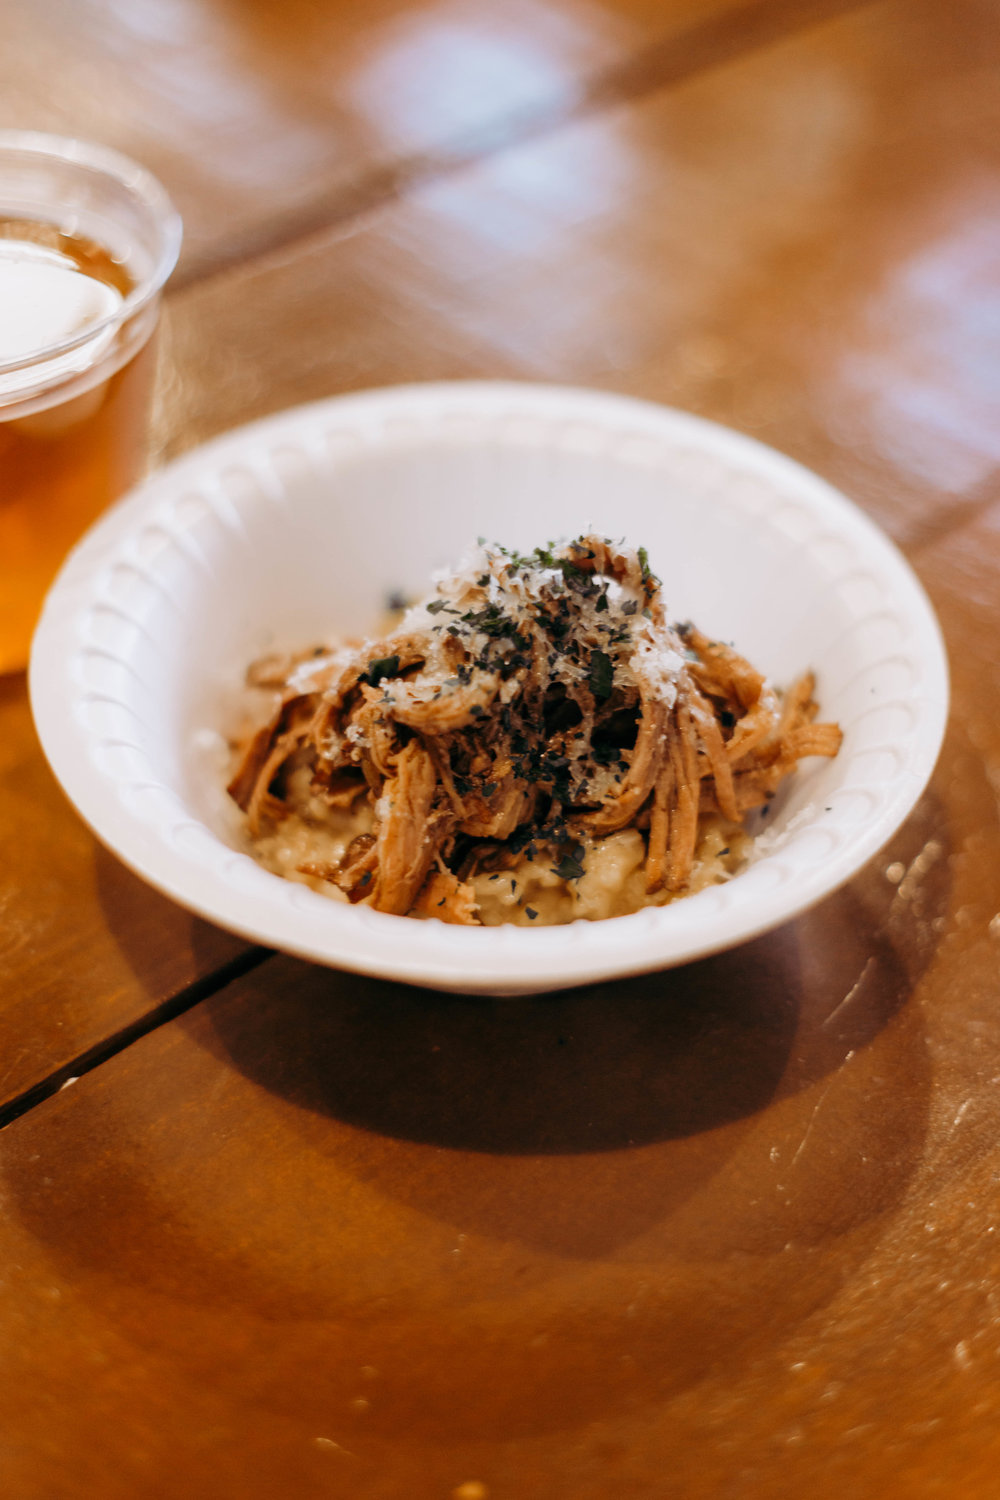 The fifth course, featuring Red Wine Braised Brisket Risotto, topped with Campo de Montalban cheese and paired with Armadillo's Berliner Weisse. Photo by Jennifer Meza.